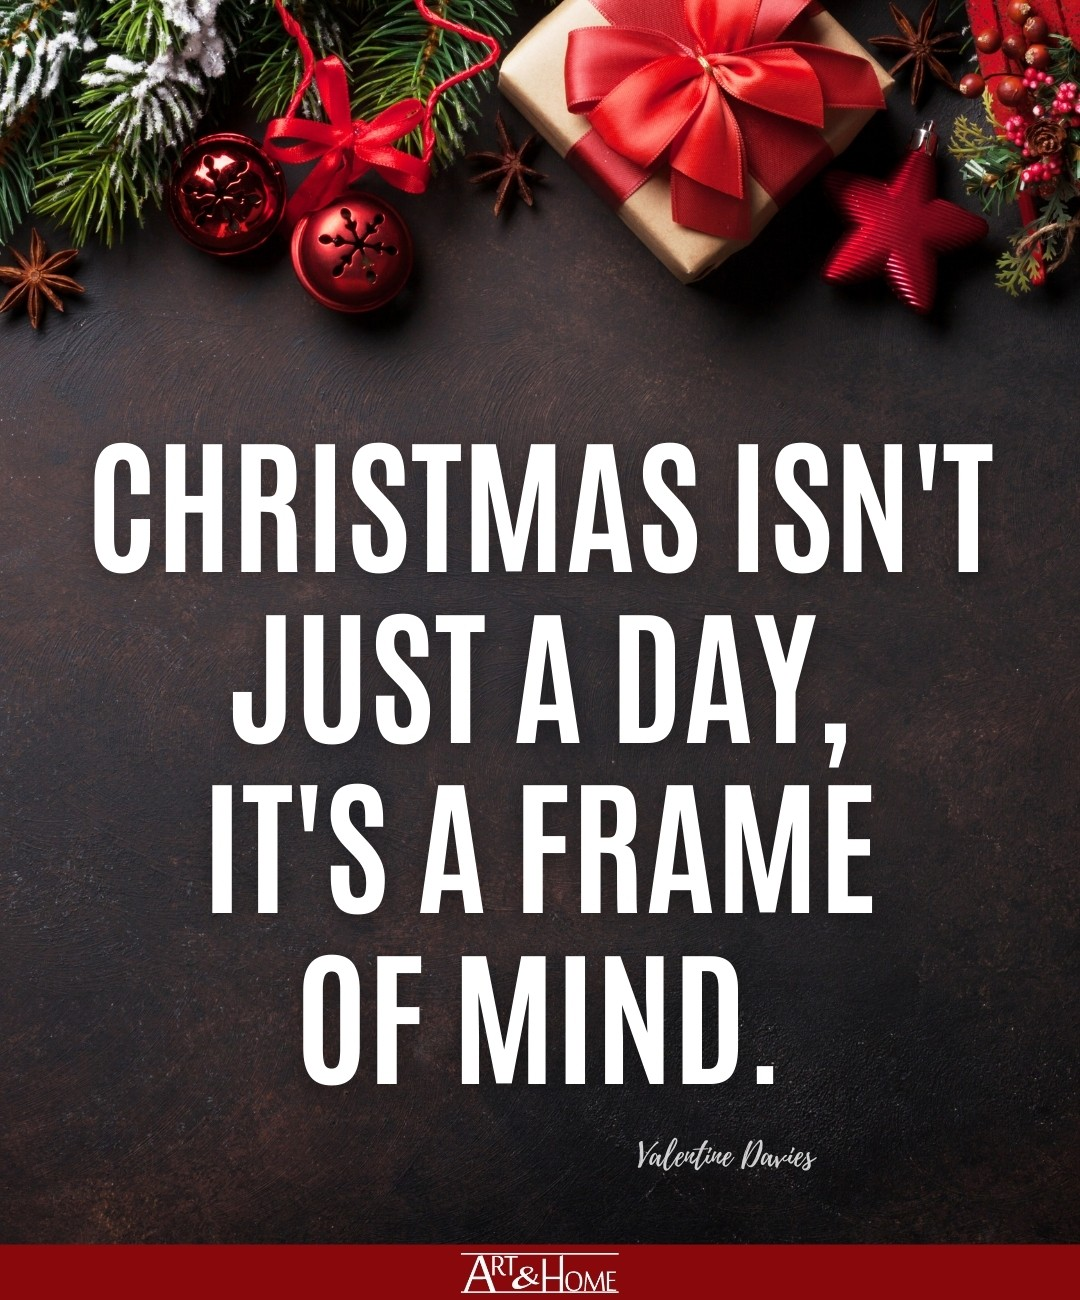 Christmas isn't just a day, it's a frame of mind. Valentine Davies quote from Miracle on 34th Street.